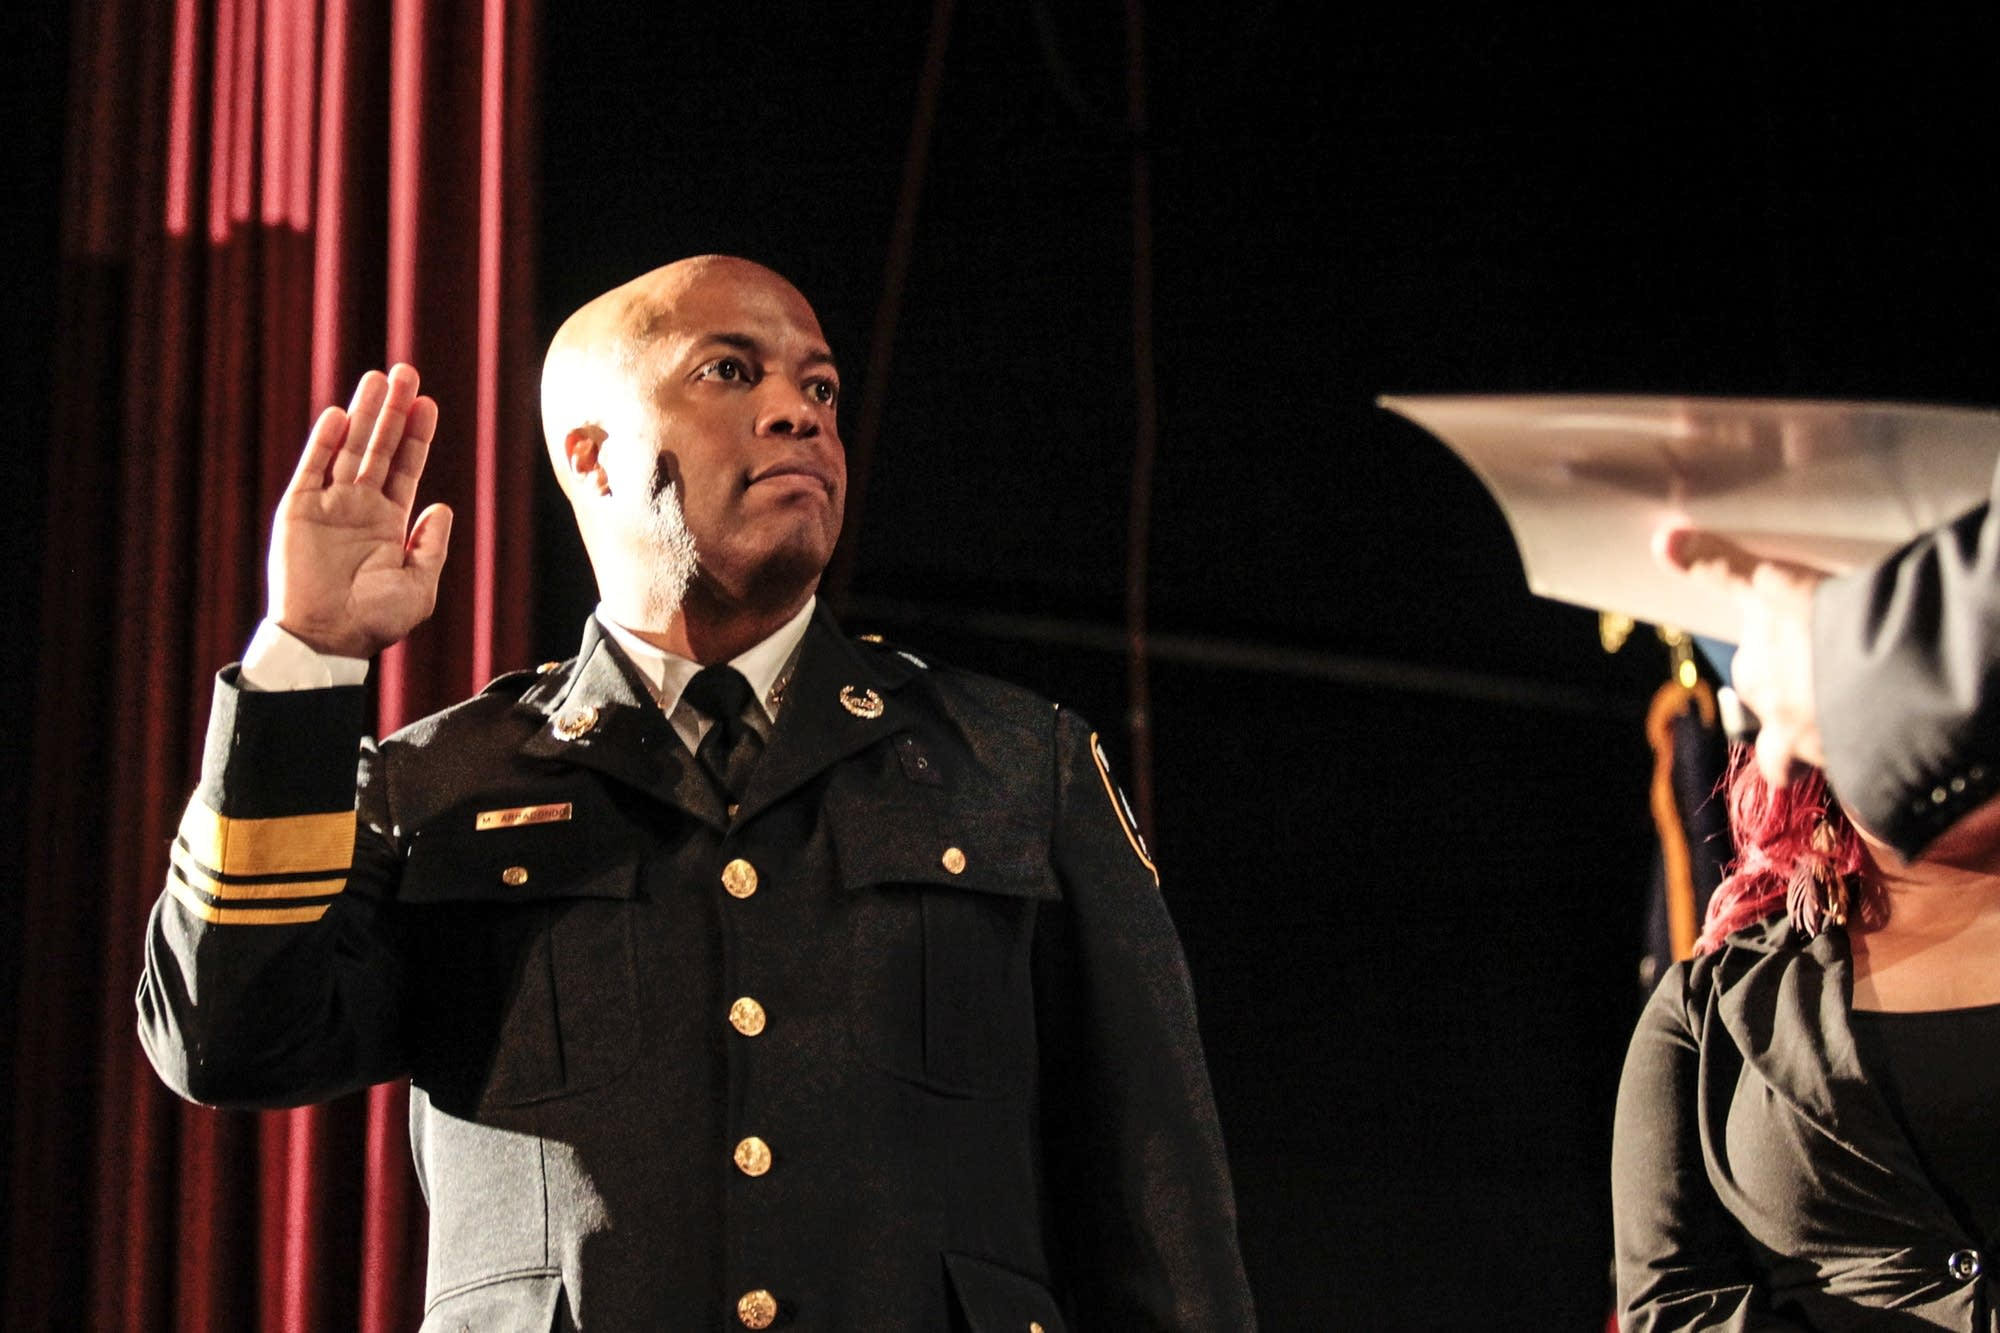 Chief Medaria Arradondo is sworn in at Sabathani Community Center.